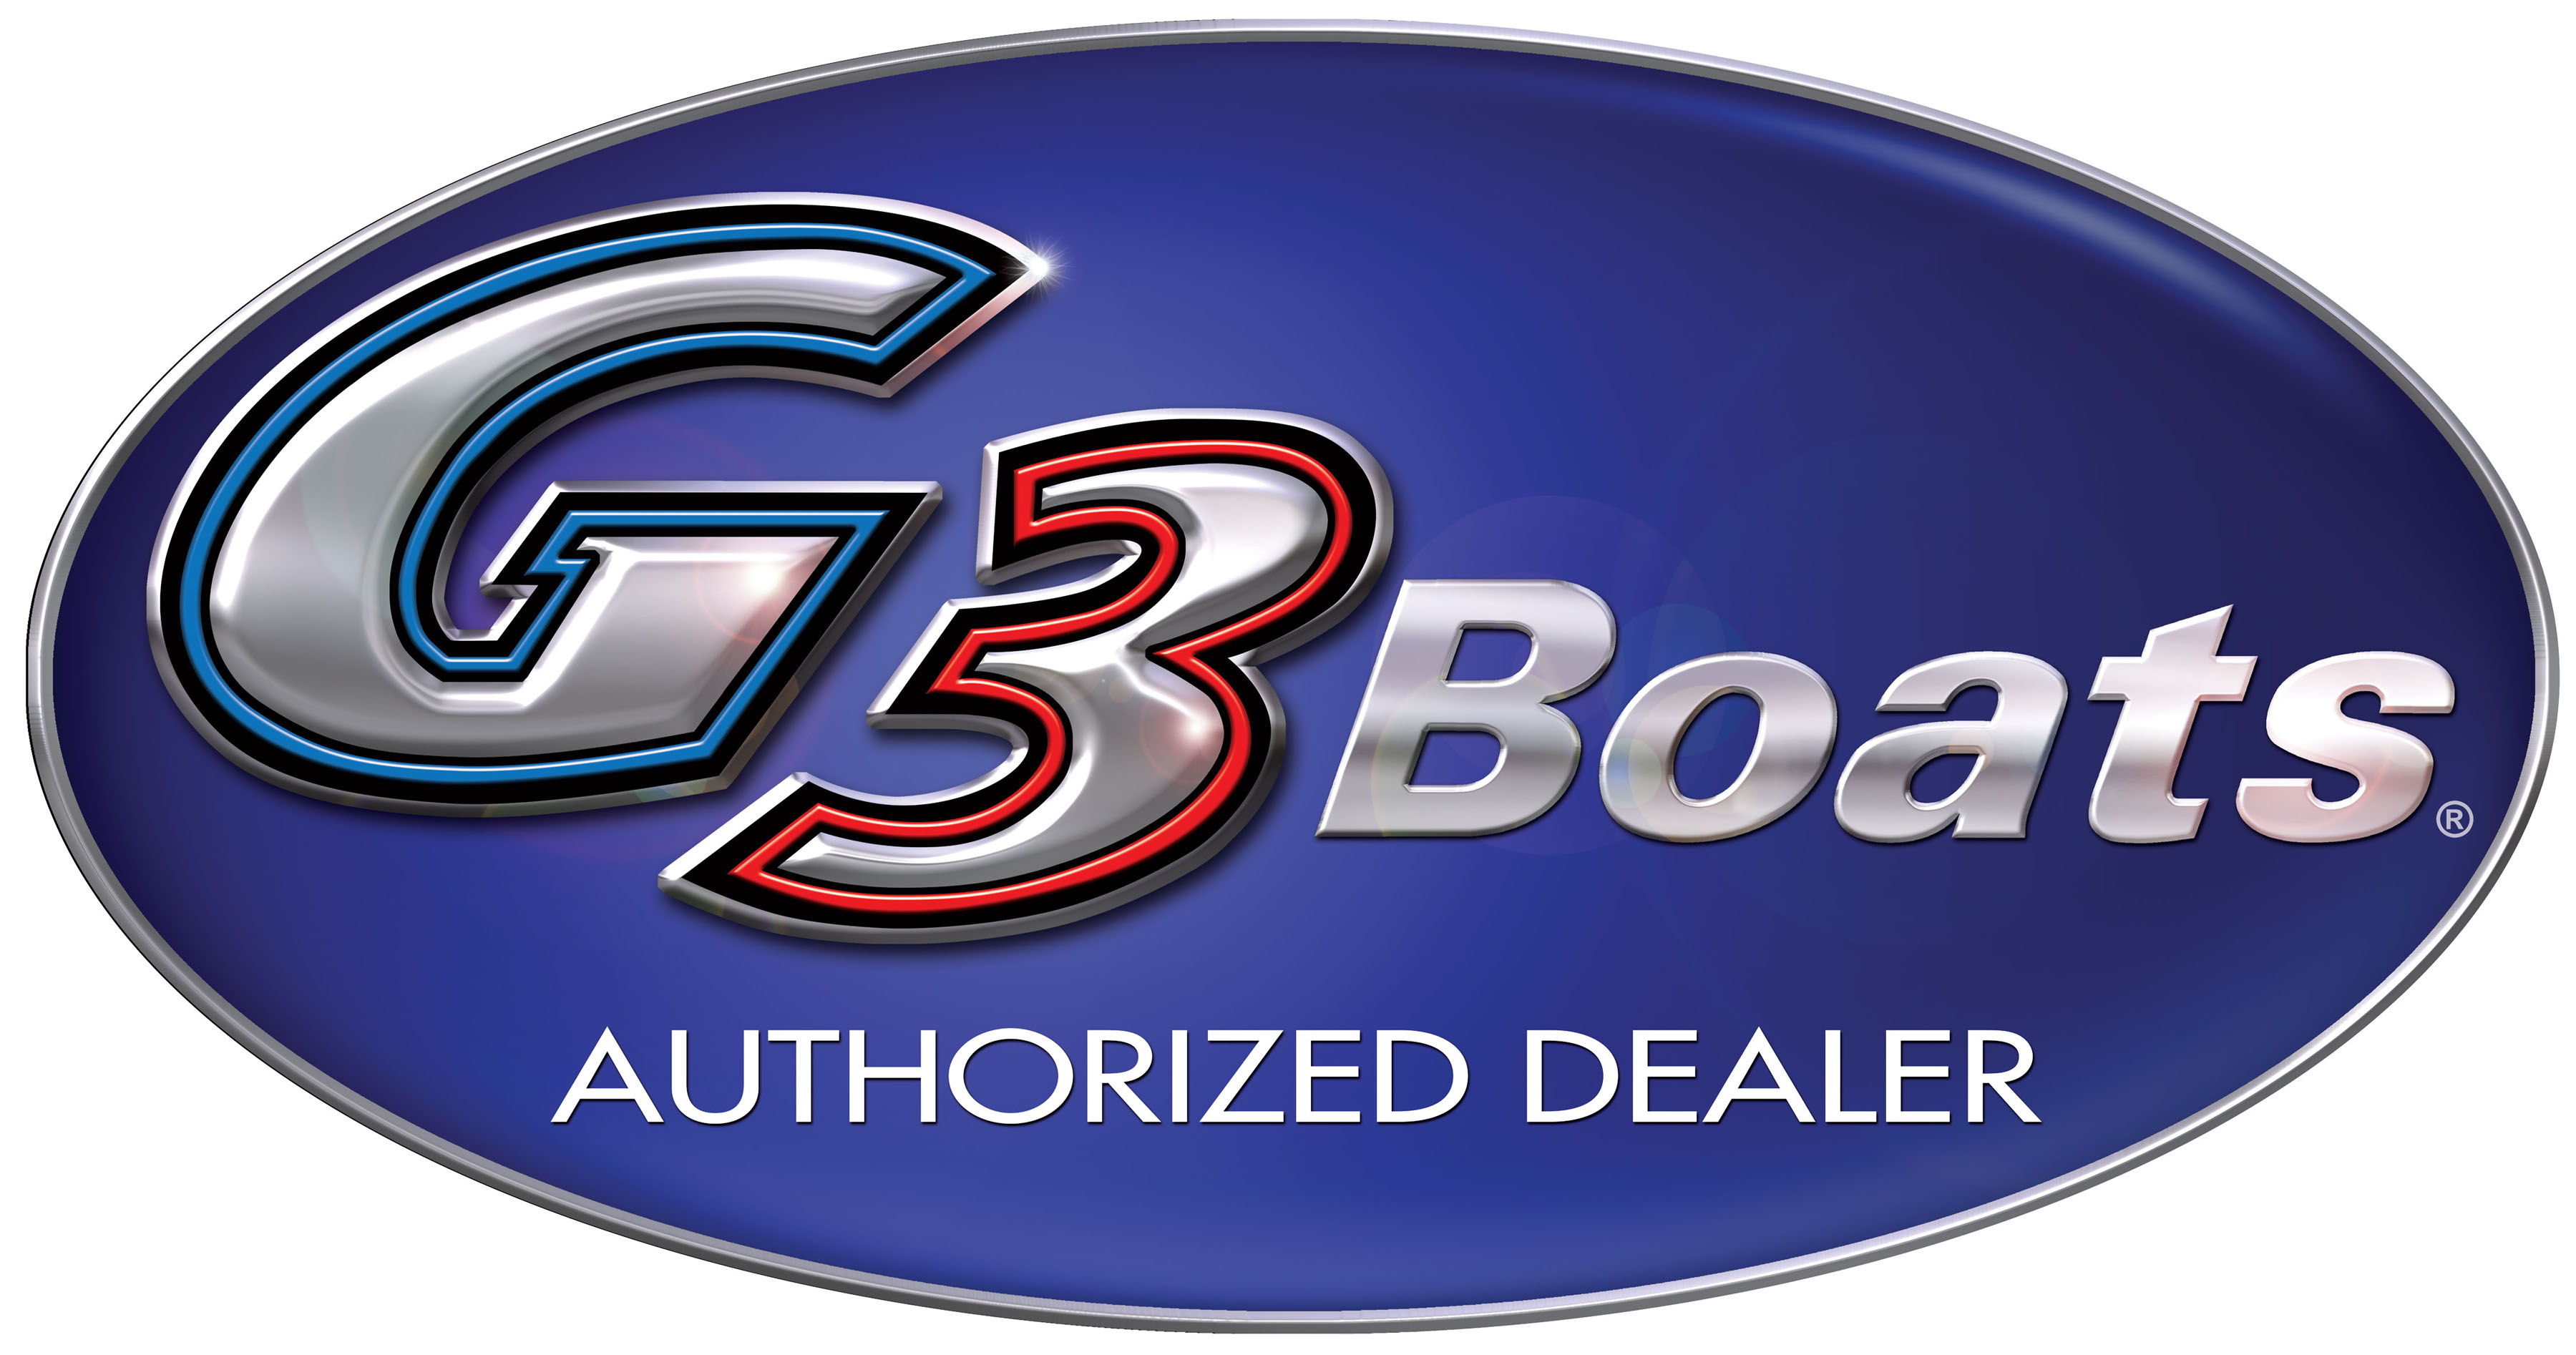 g3-authorized-dealer.jpg